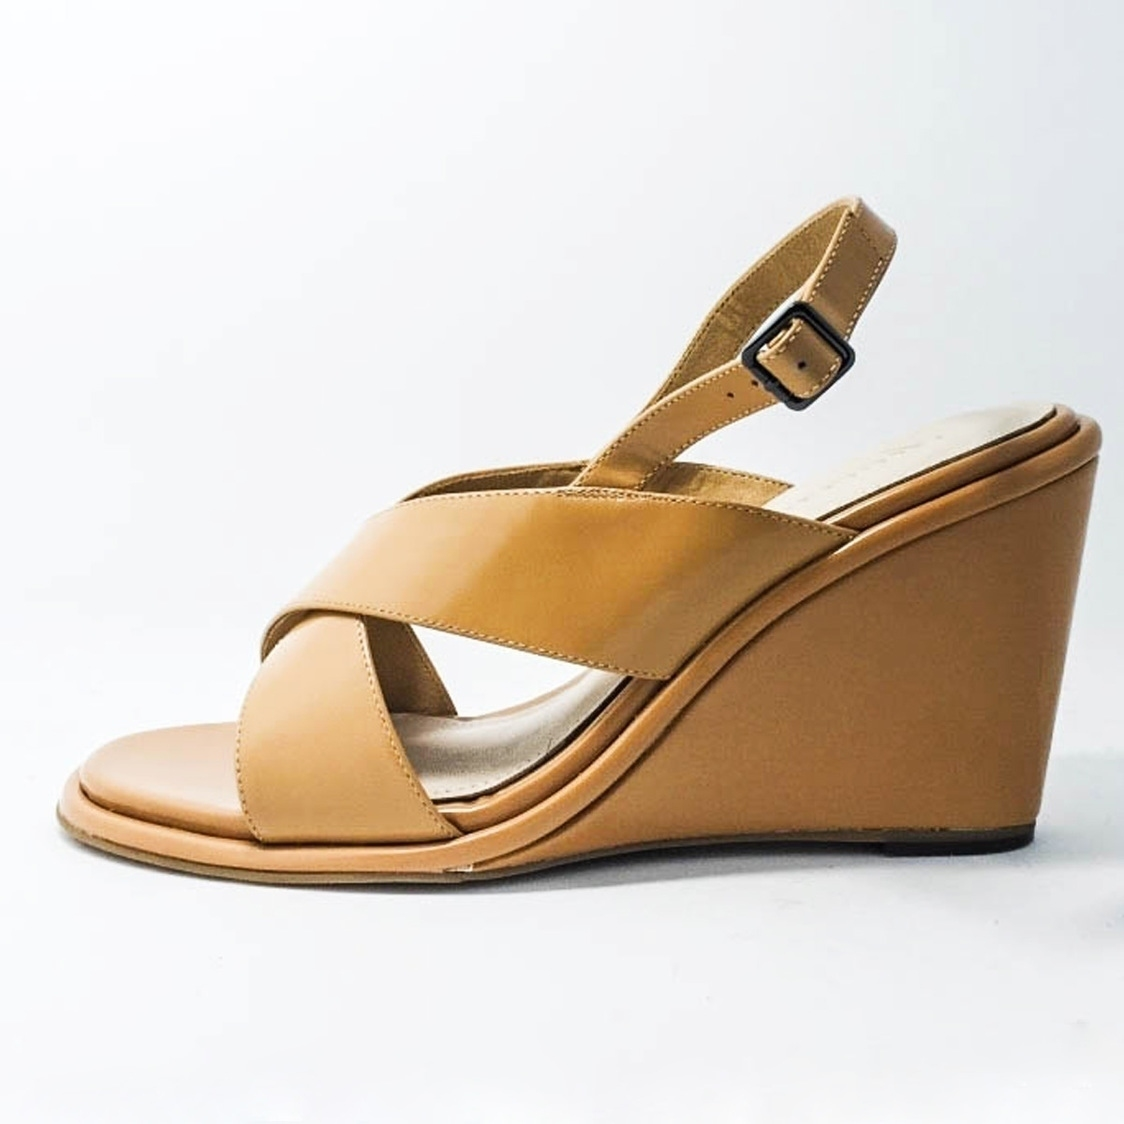 Box Leather Wedge Sandal - Camel